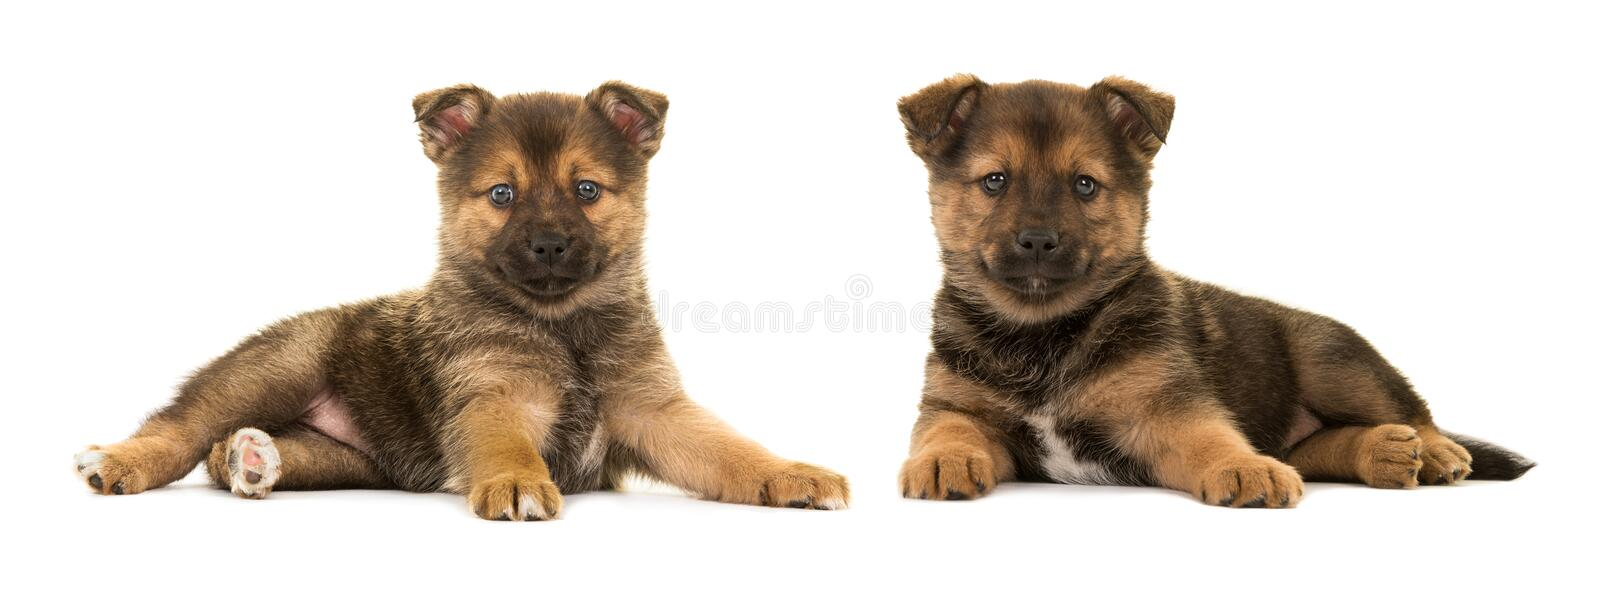 Two cute puppies pomsky. Two cute lying down pomsky (mix between pomeranian and husky) puppy dogs both facing the camera isolated on a white background royalty free stock photography